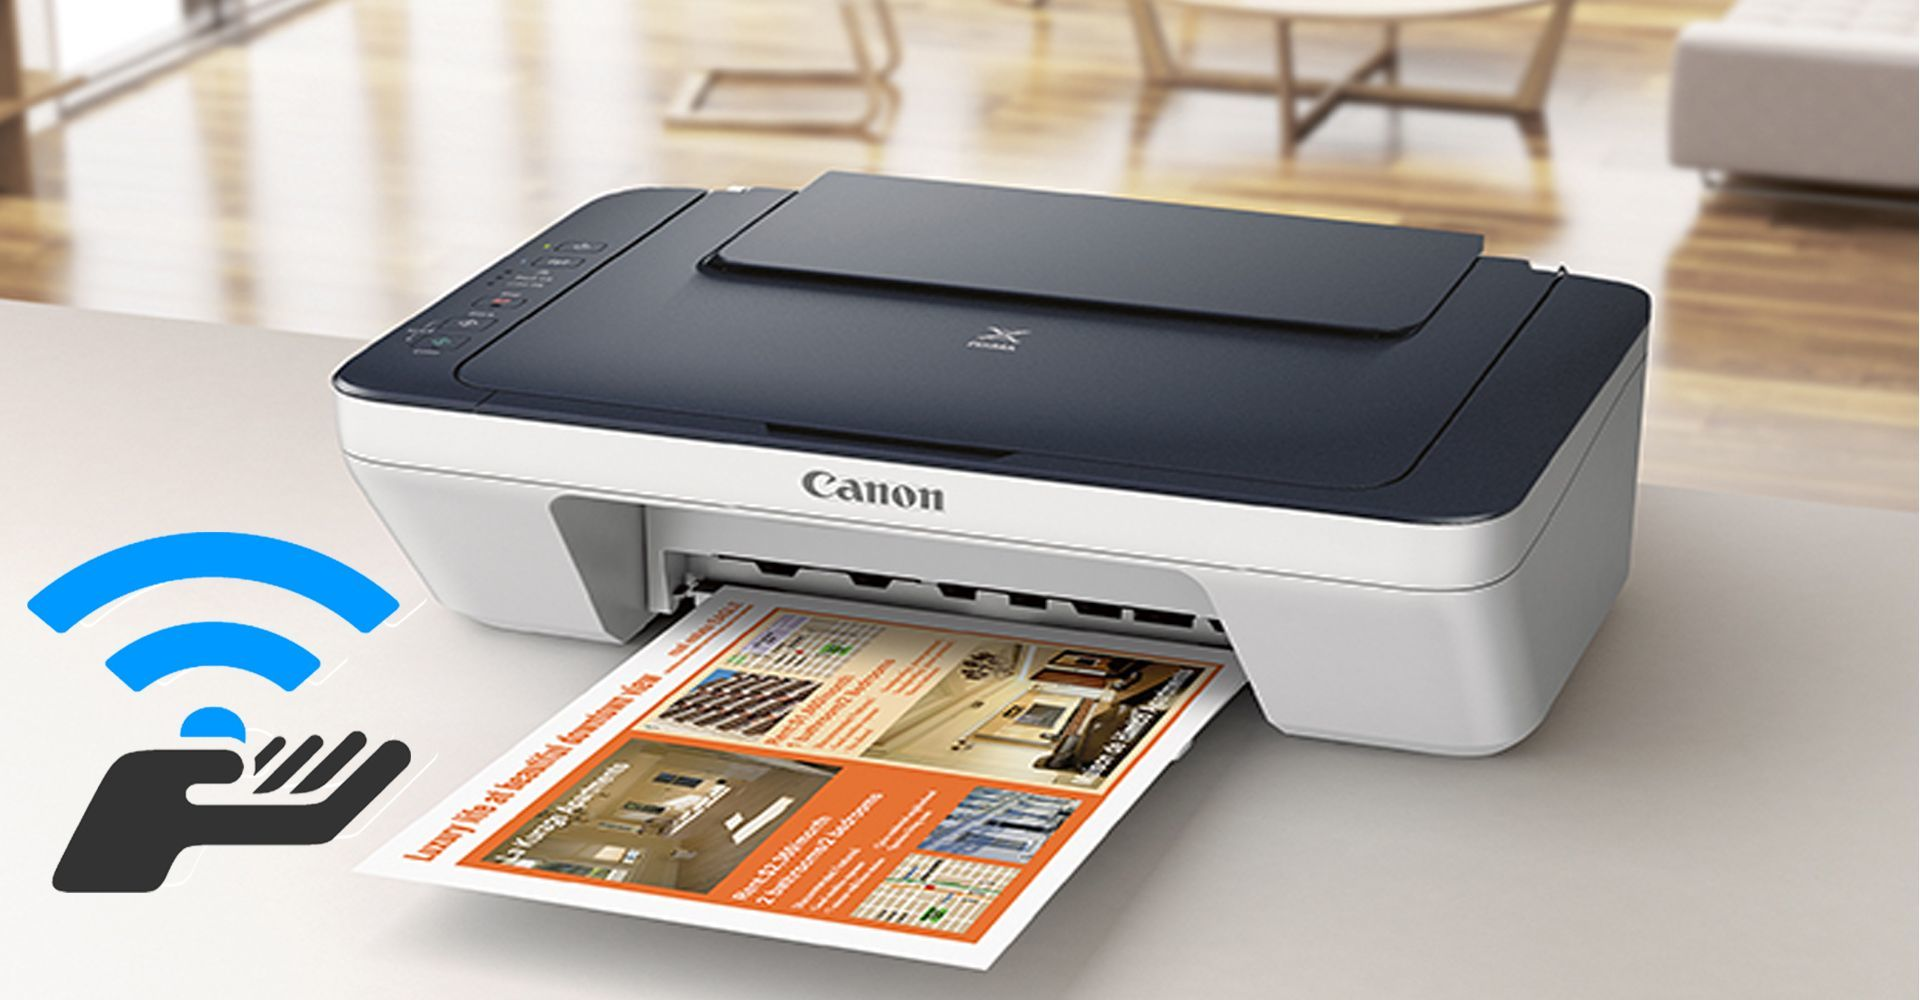 How to Connect Canon Printer to WiFi?